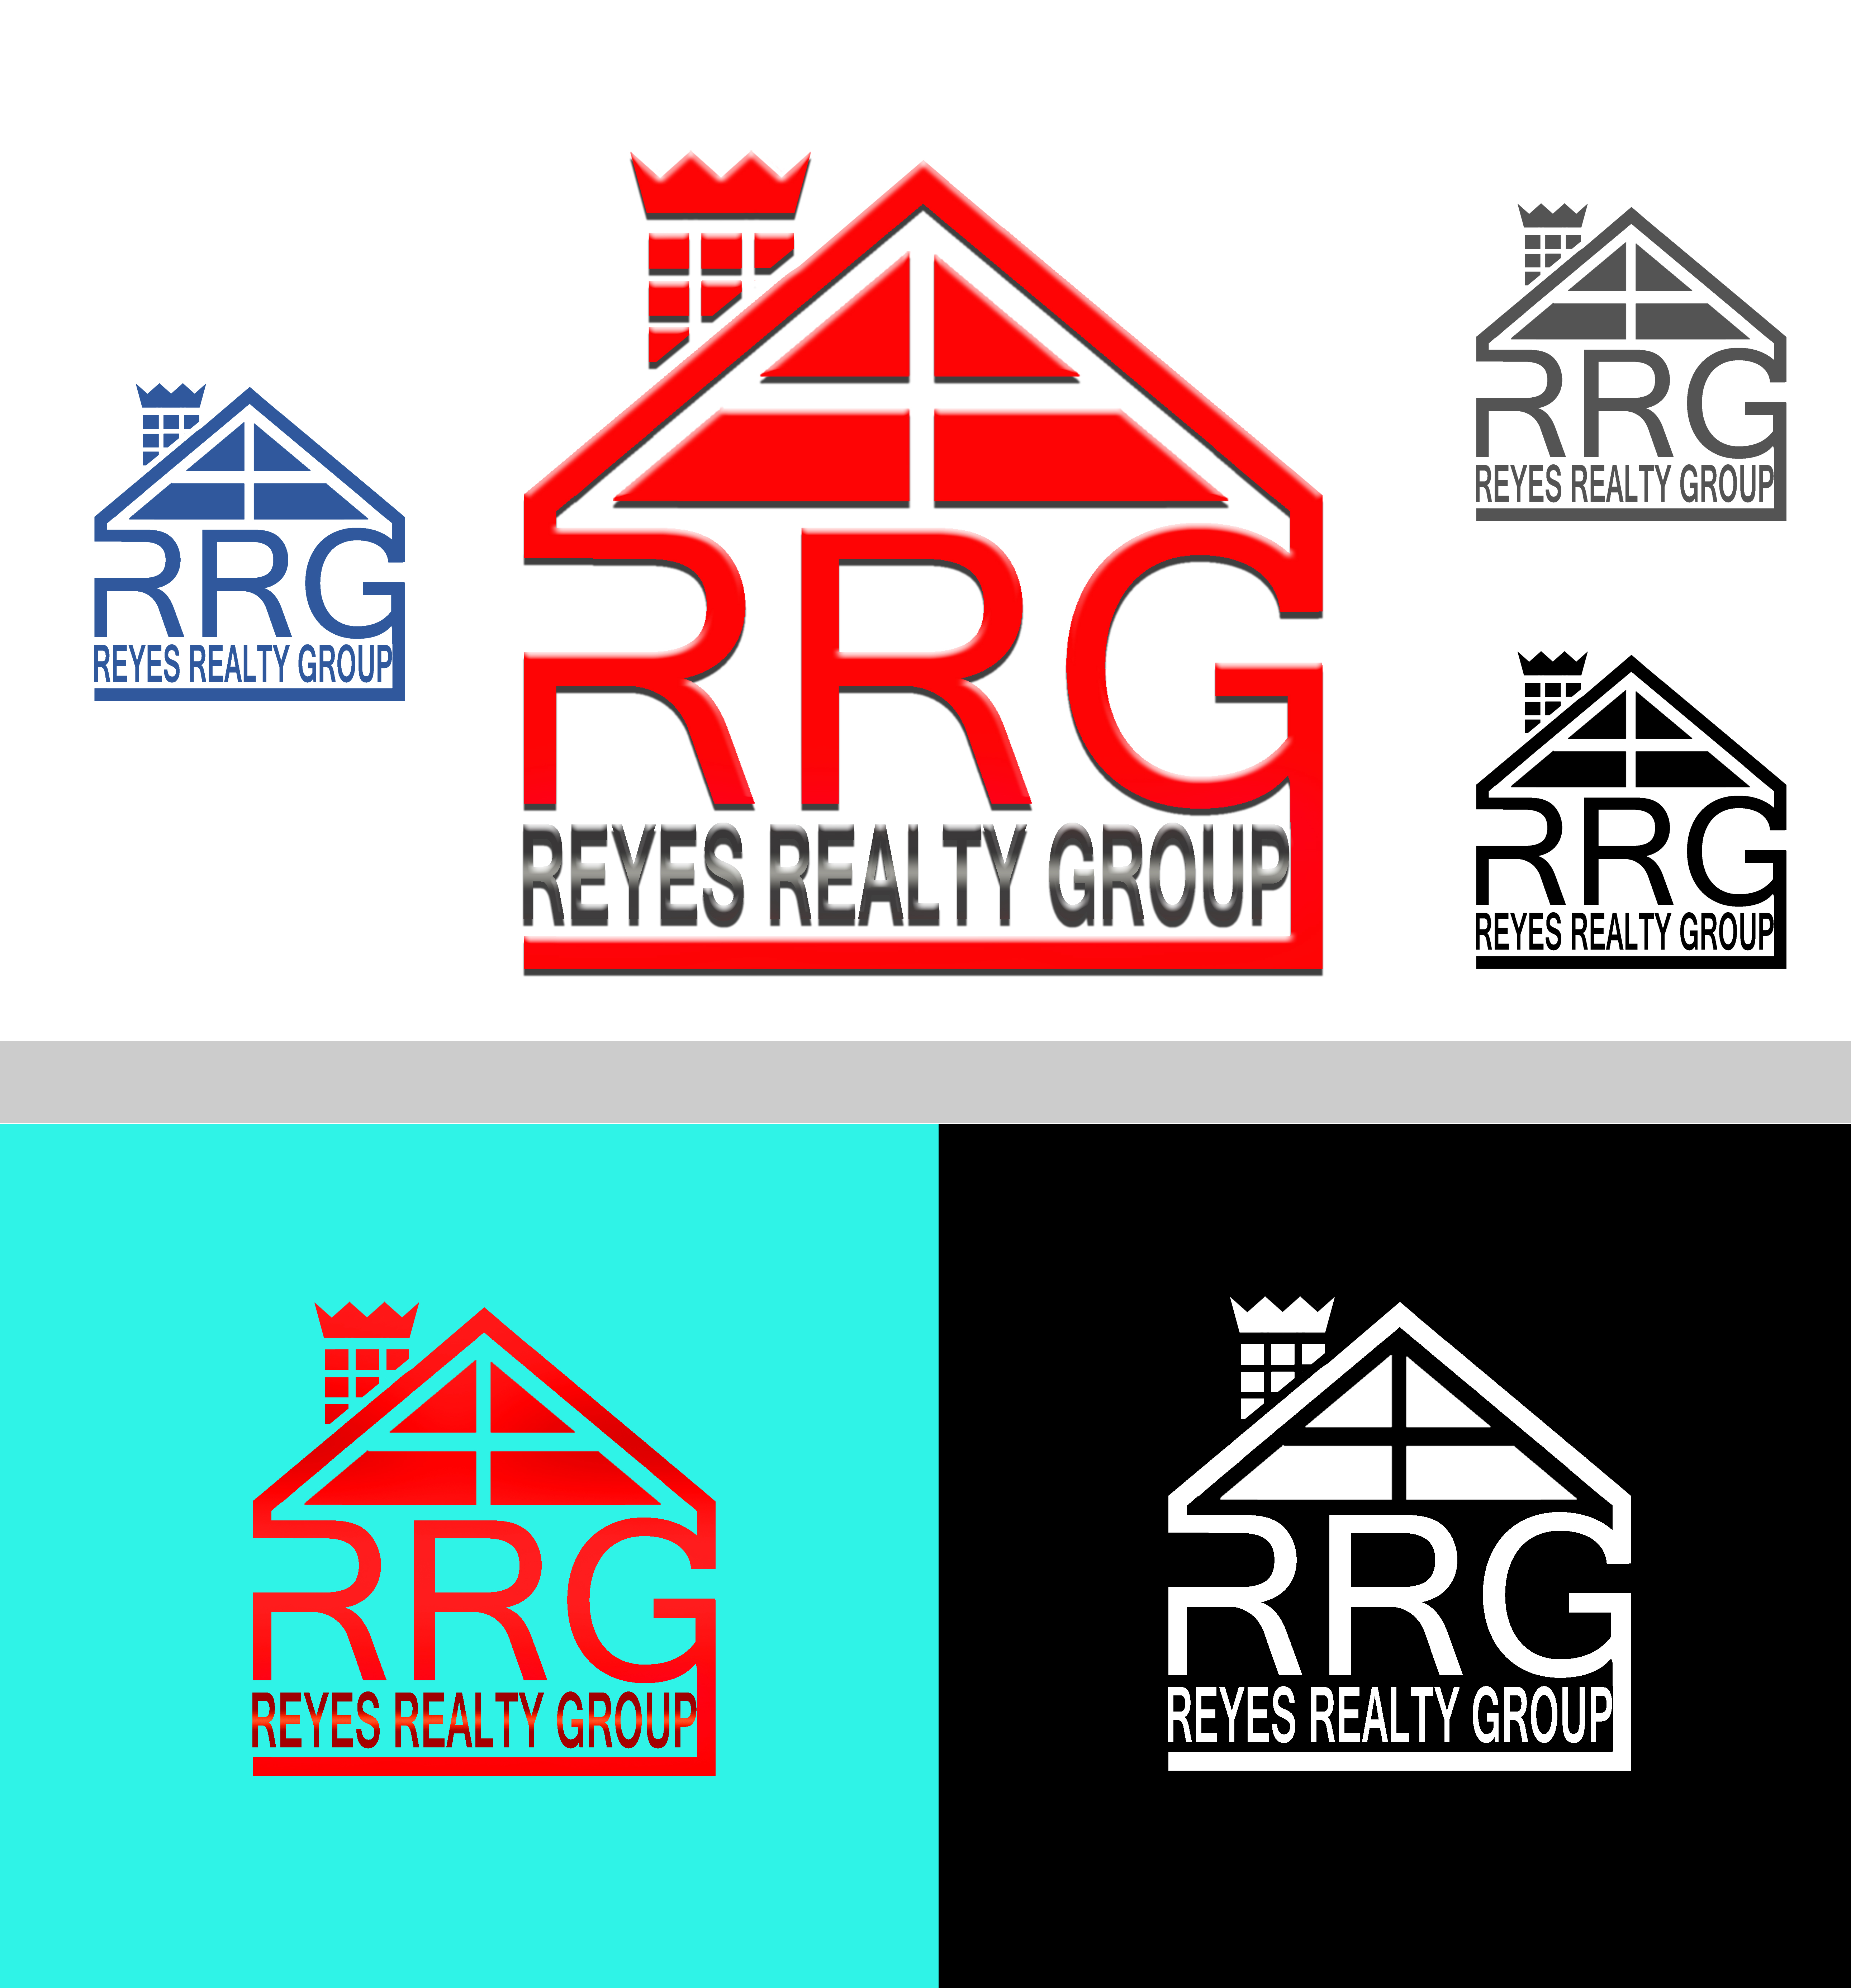 Logo Design by JSDESIGNGROUP - Entry No. 15 in the Logo Design Contest Reyes Realty Group Logo Design.